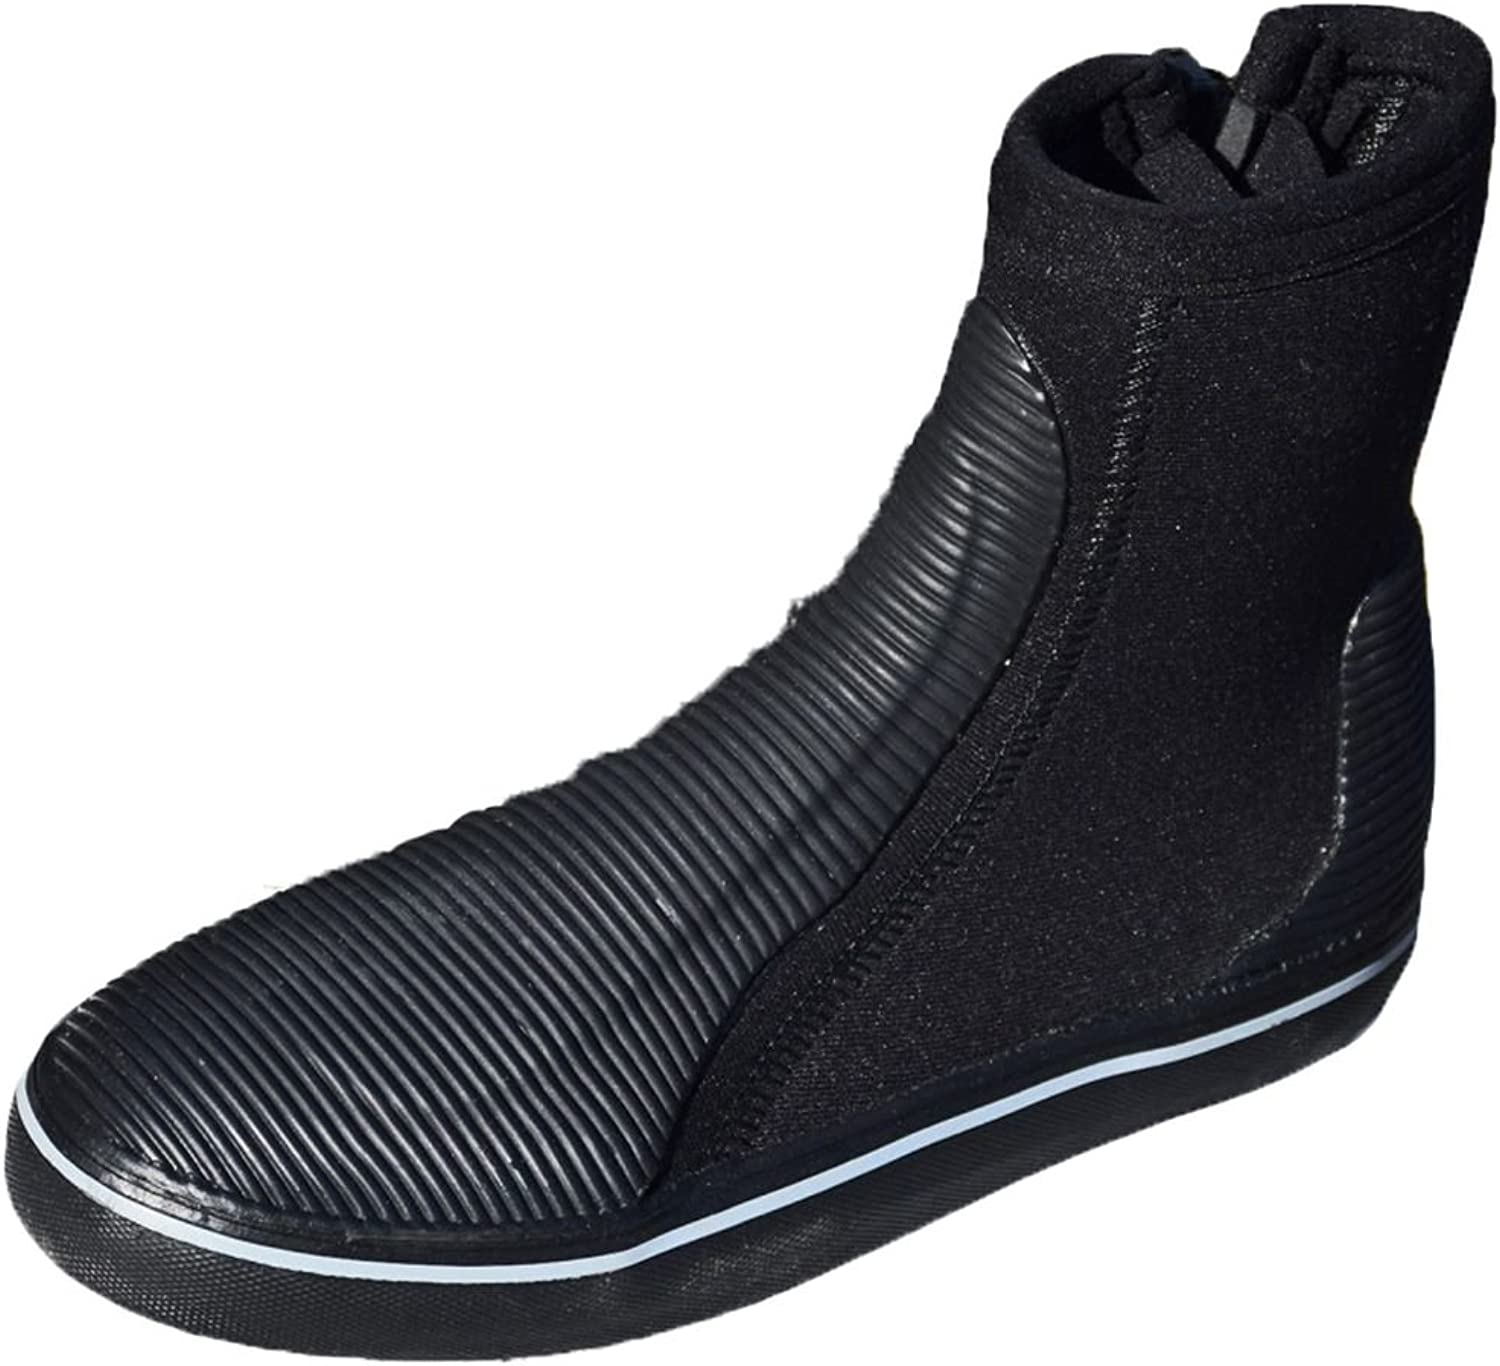 Musto neoprene trapeze boots - performance dinghy boat